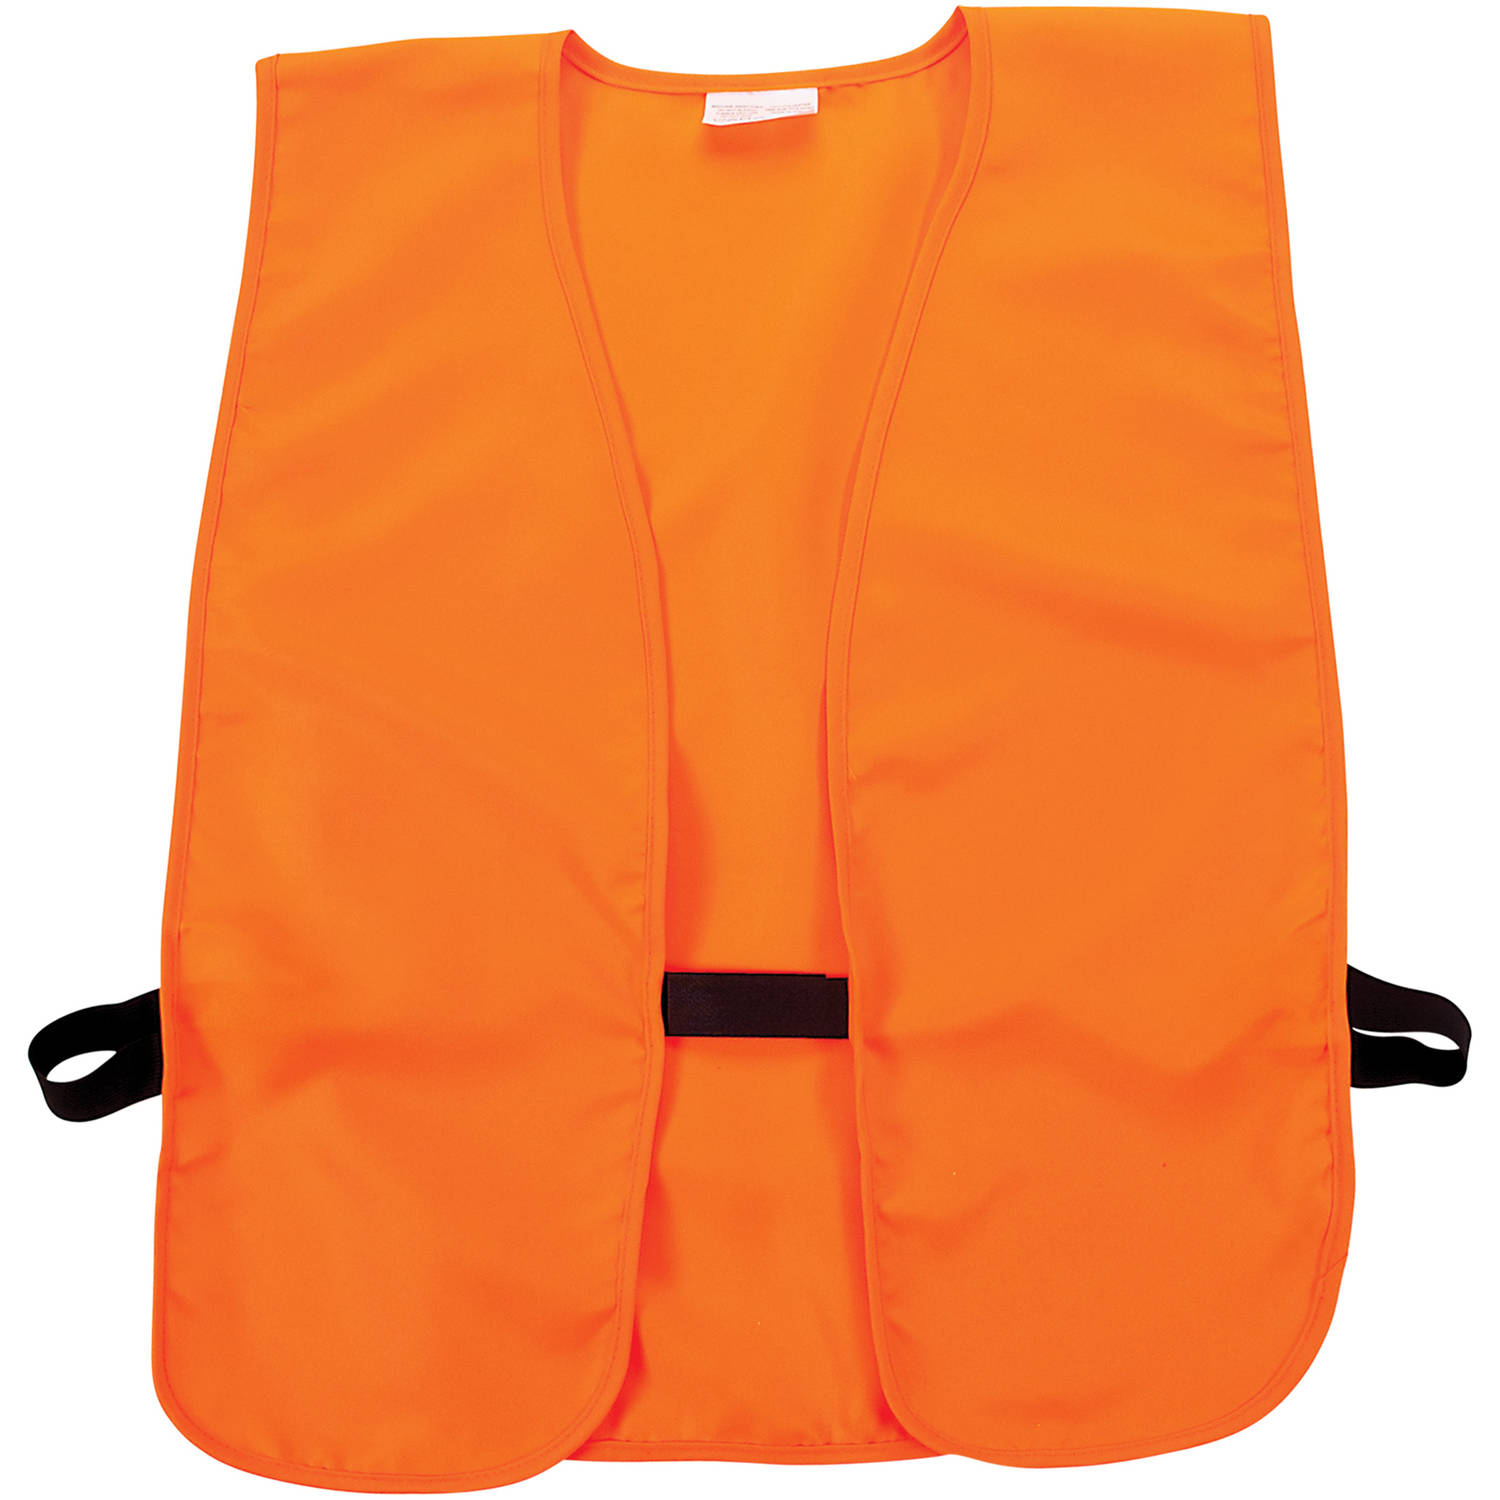 Allen Blaze Hunting Vest, Fits Lg and Xl